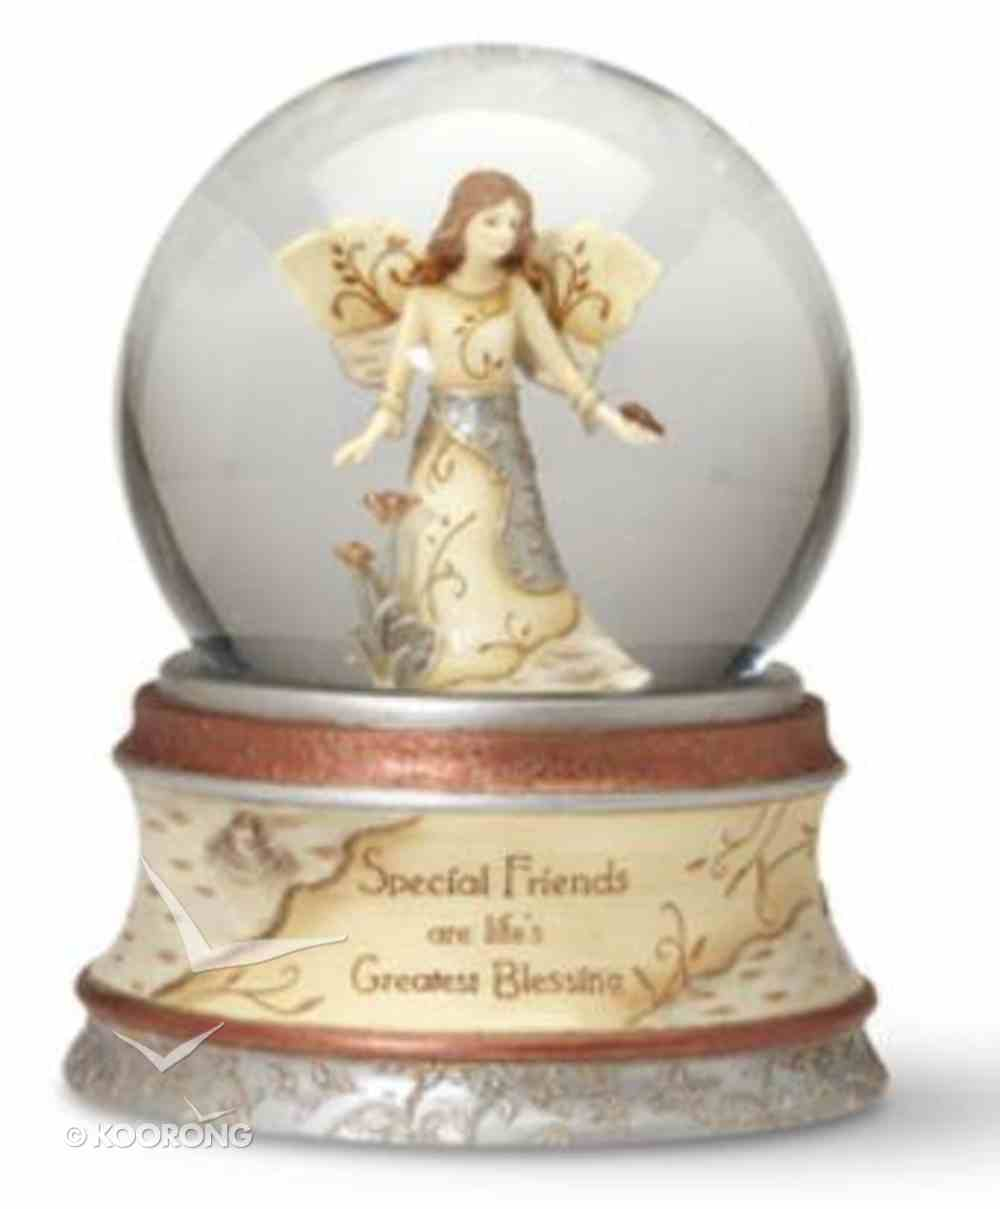 Elements Musical Water Globe: Special Friends Are Life's Greatest Blessing Homeware